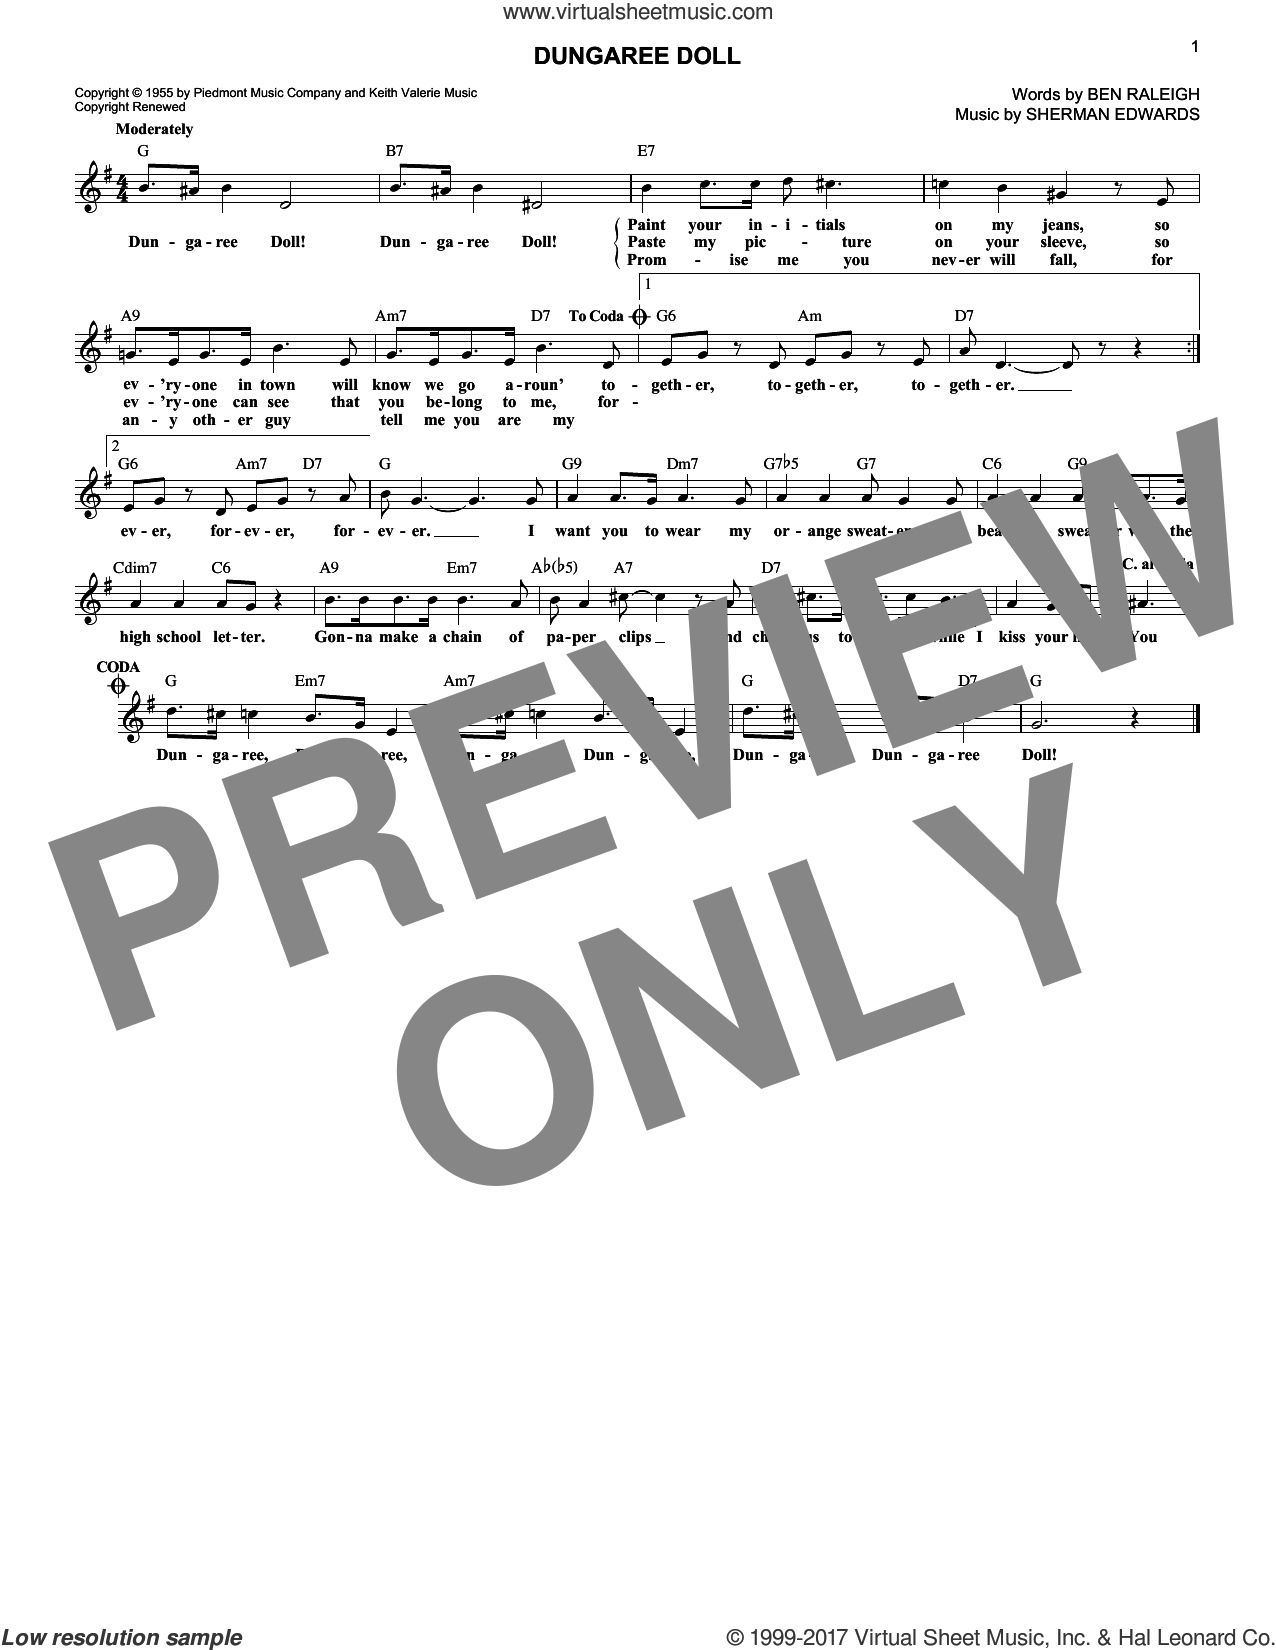 Dungaree Doll sheet music for voice and other instruments (fake book) by Eddie Fischer, Ben Raleigh and Sherman Edwards, intermediate skill level